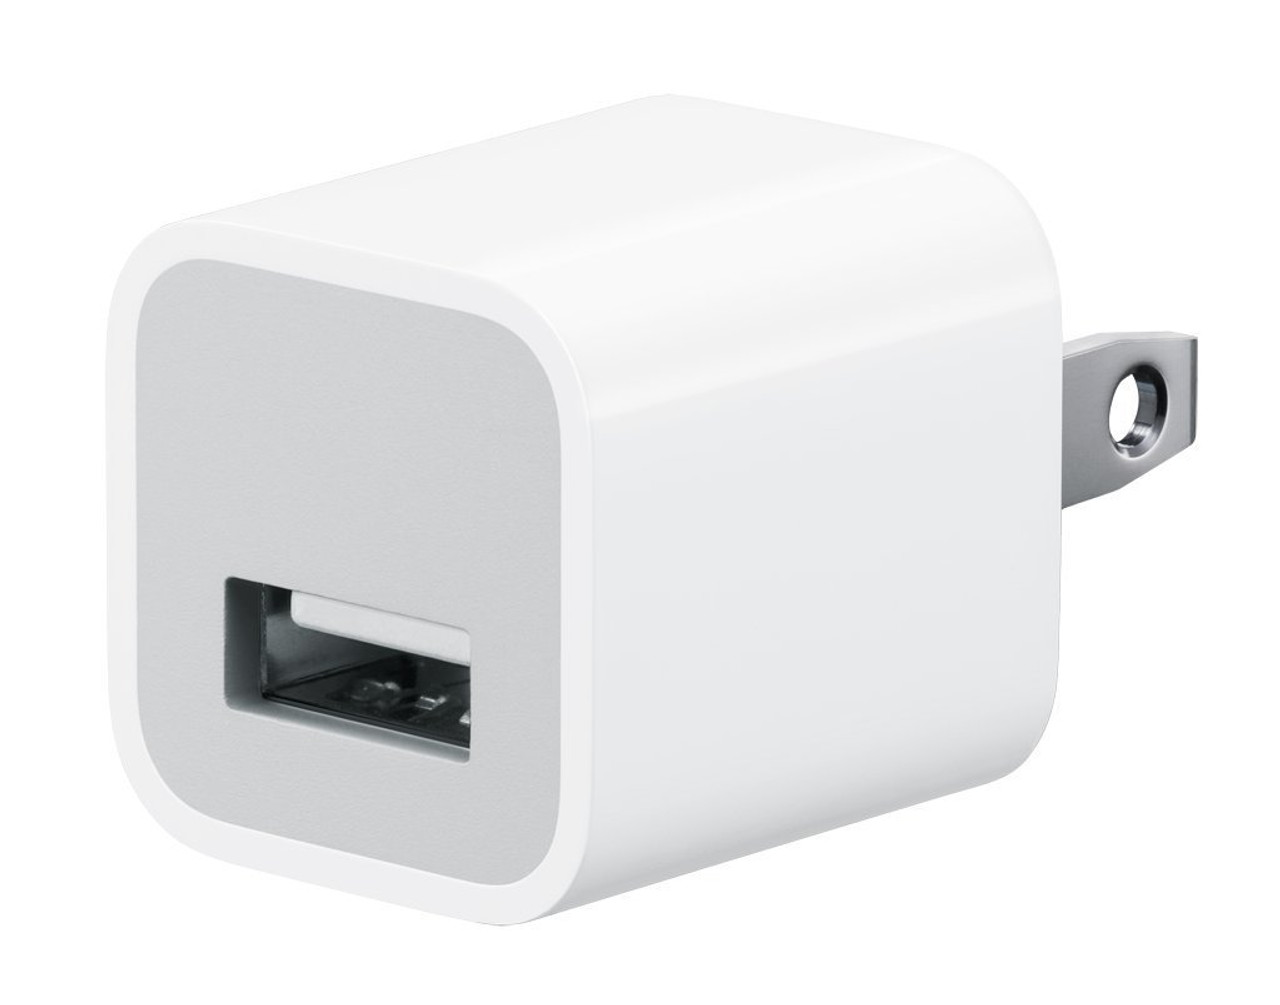 Apple USB Cube Adapter 5W Wall Charger for iPod, iPad, iPhone